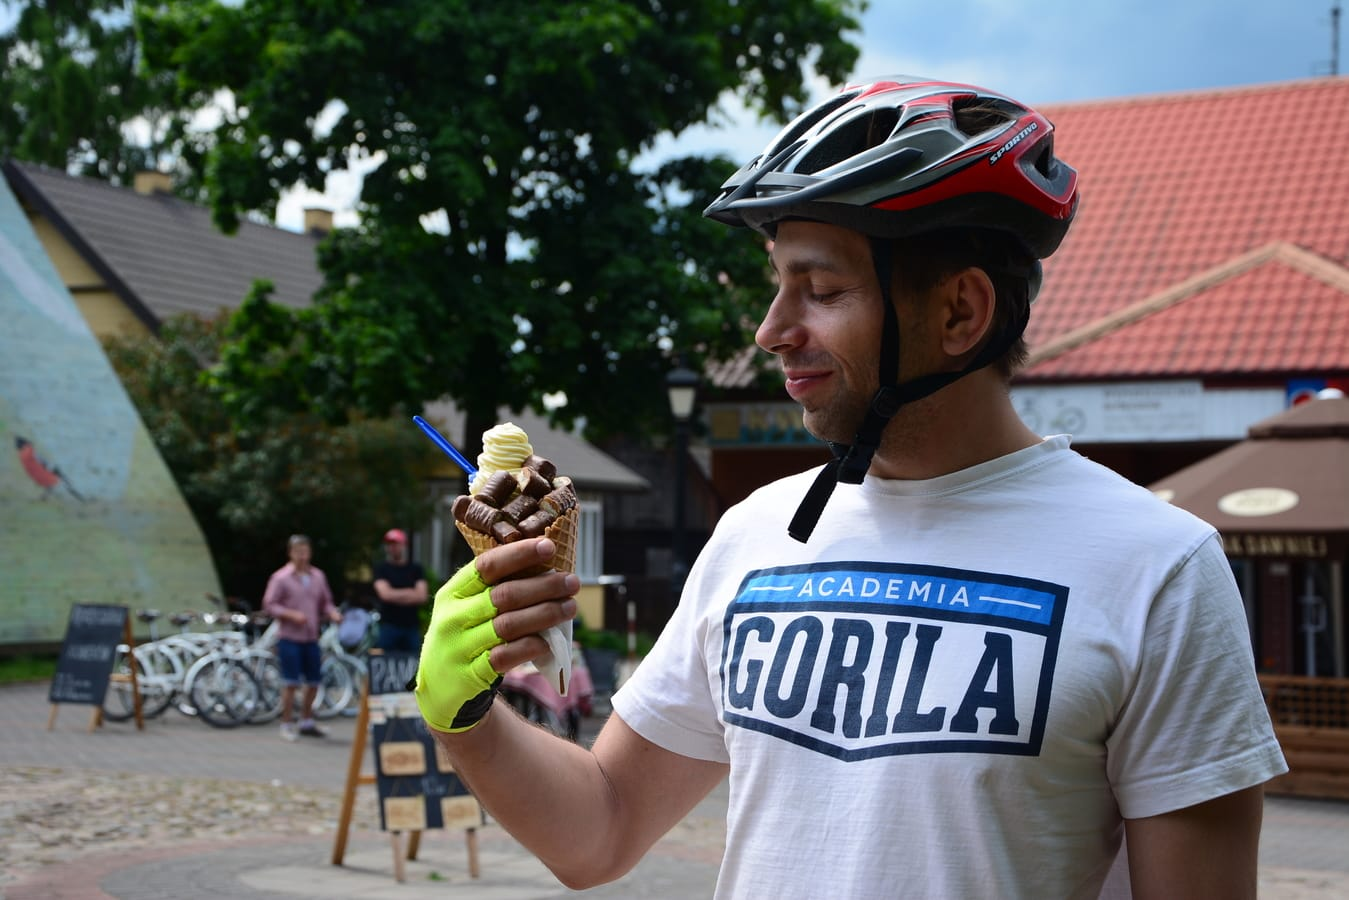 ice cream in poland biking in poland how much food in poland cost